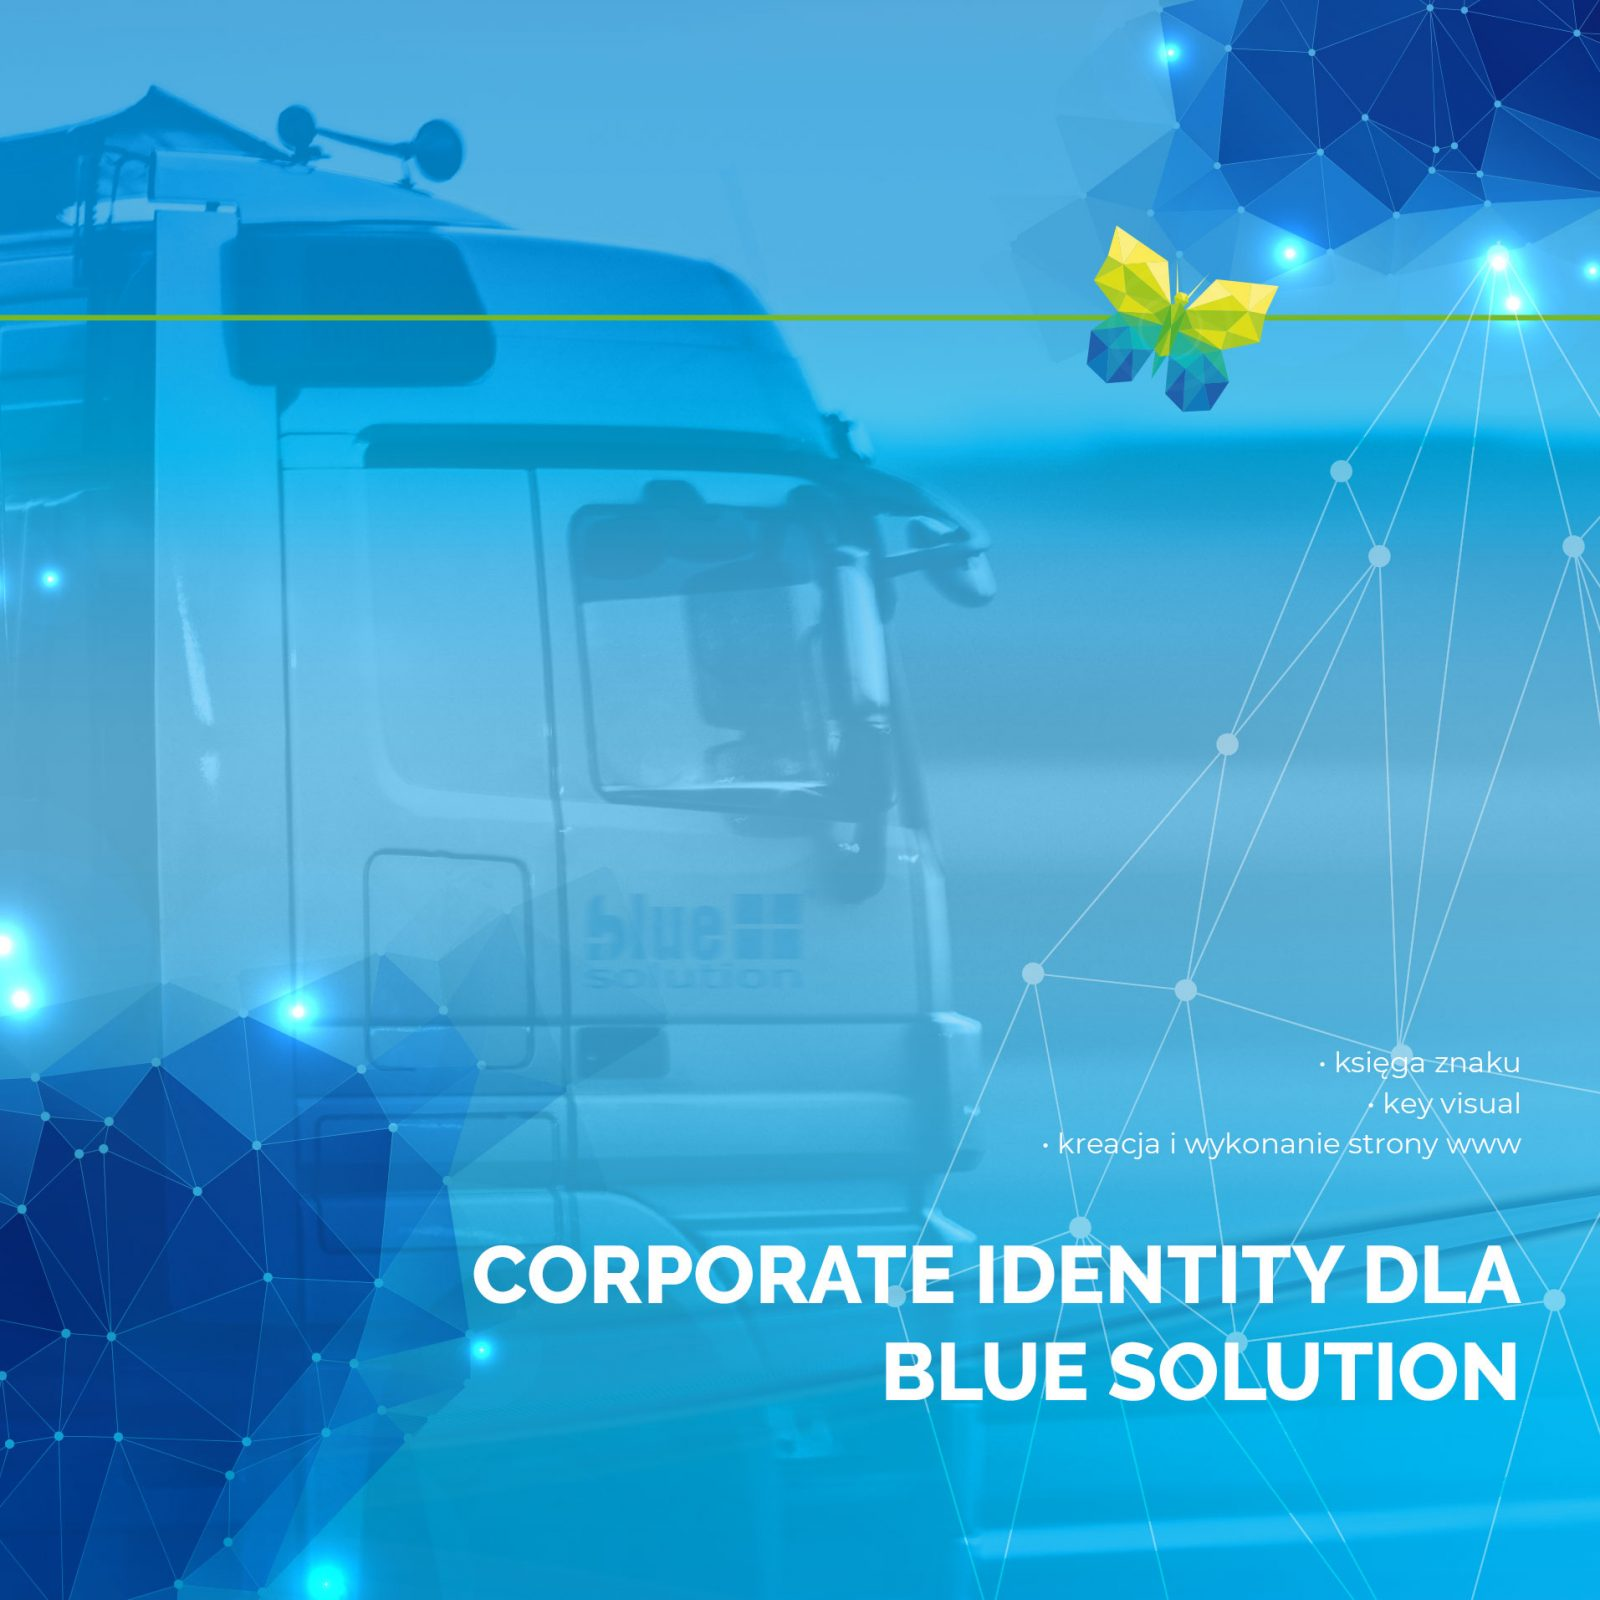 blue-solution-portfolio-poprawa